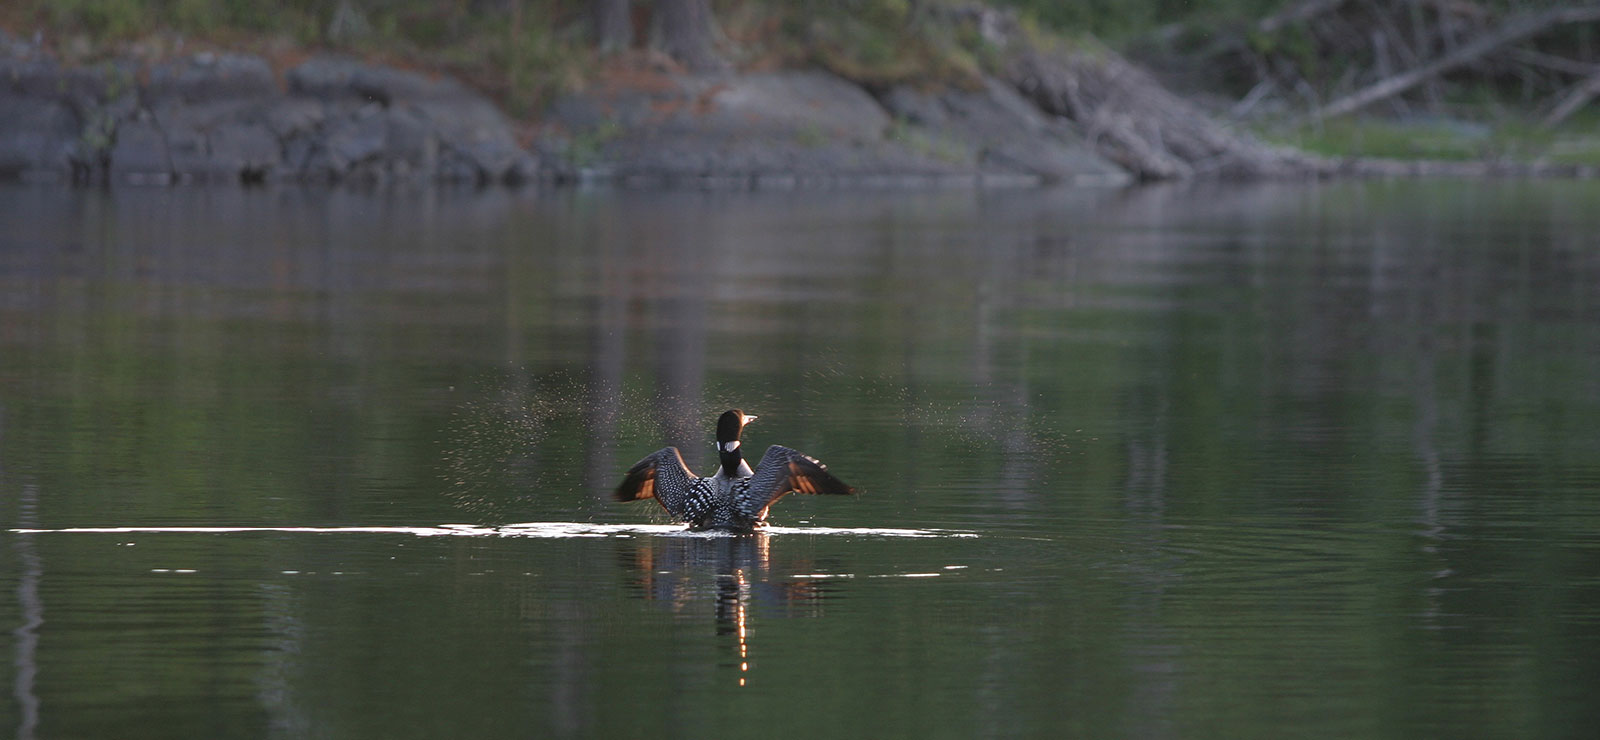 A loon splashing on the lake.